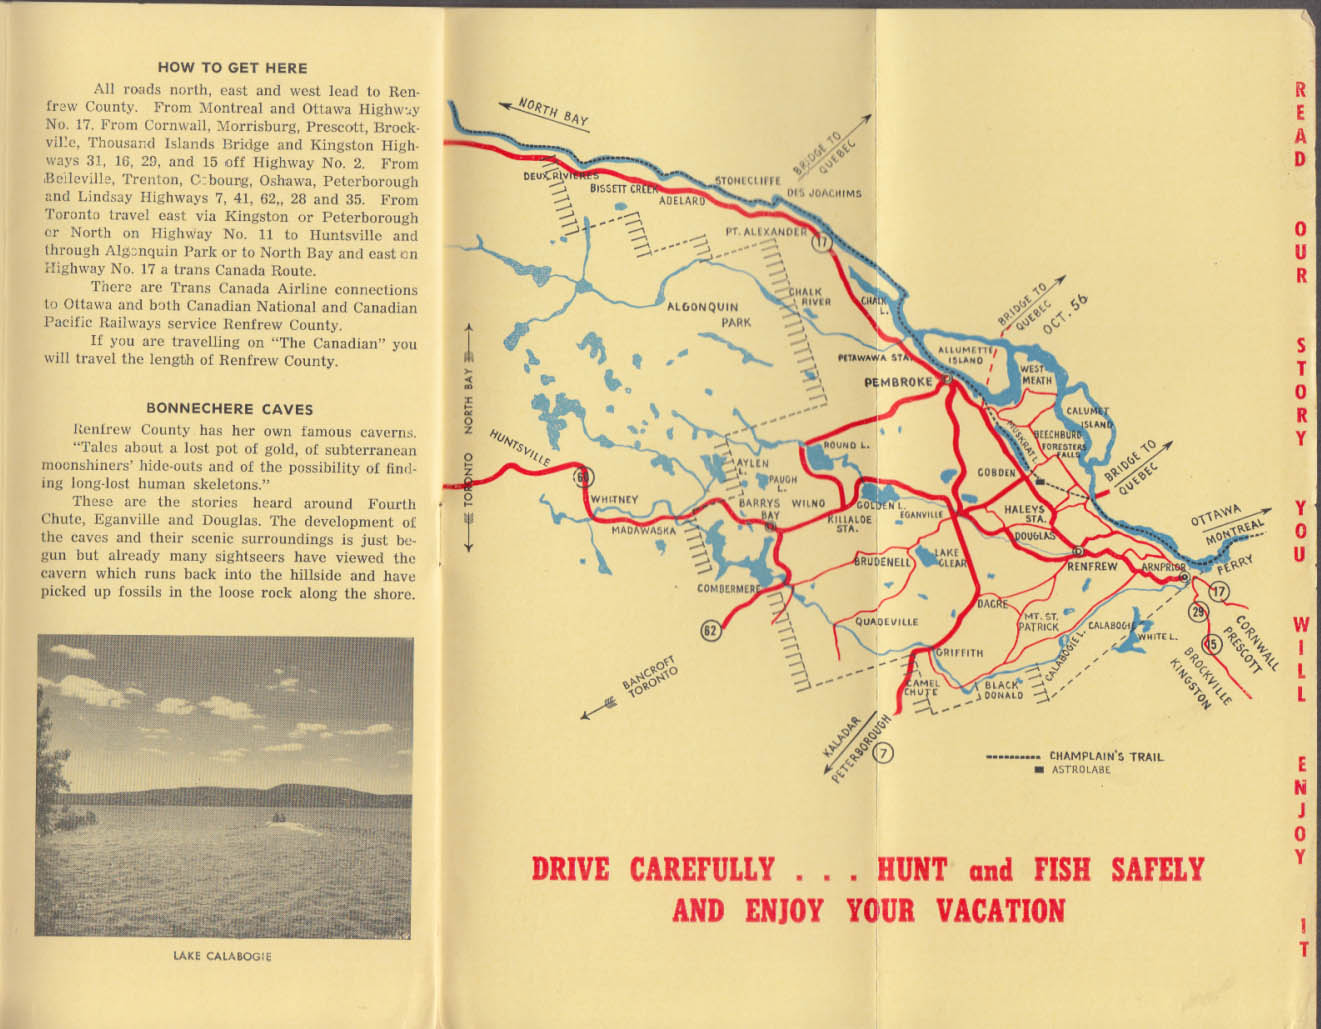 Renfrew County on the Champlain Trail Canada folder with map ca 1950s